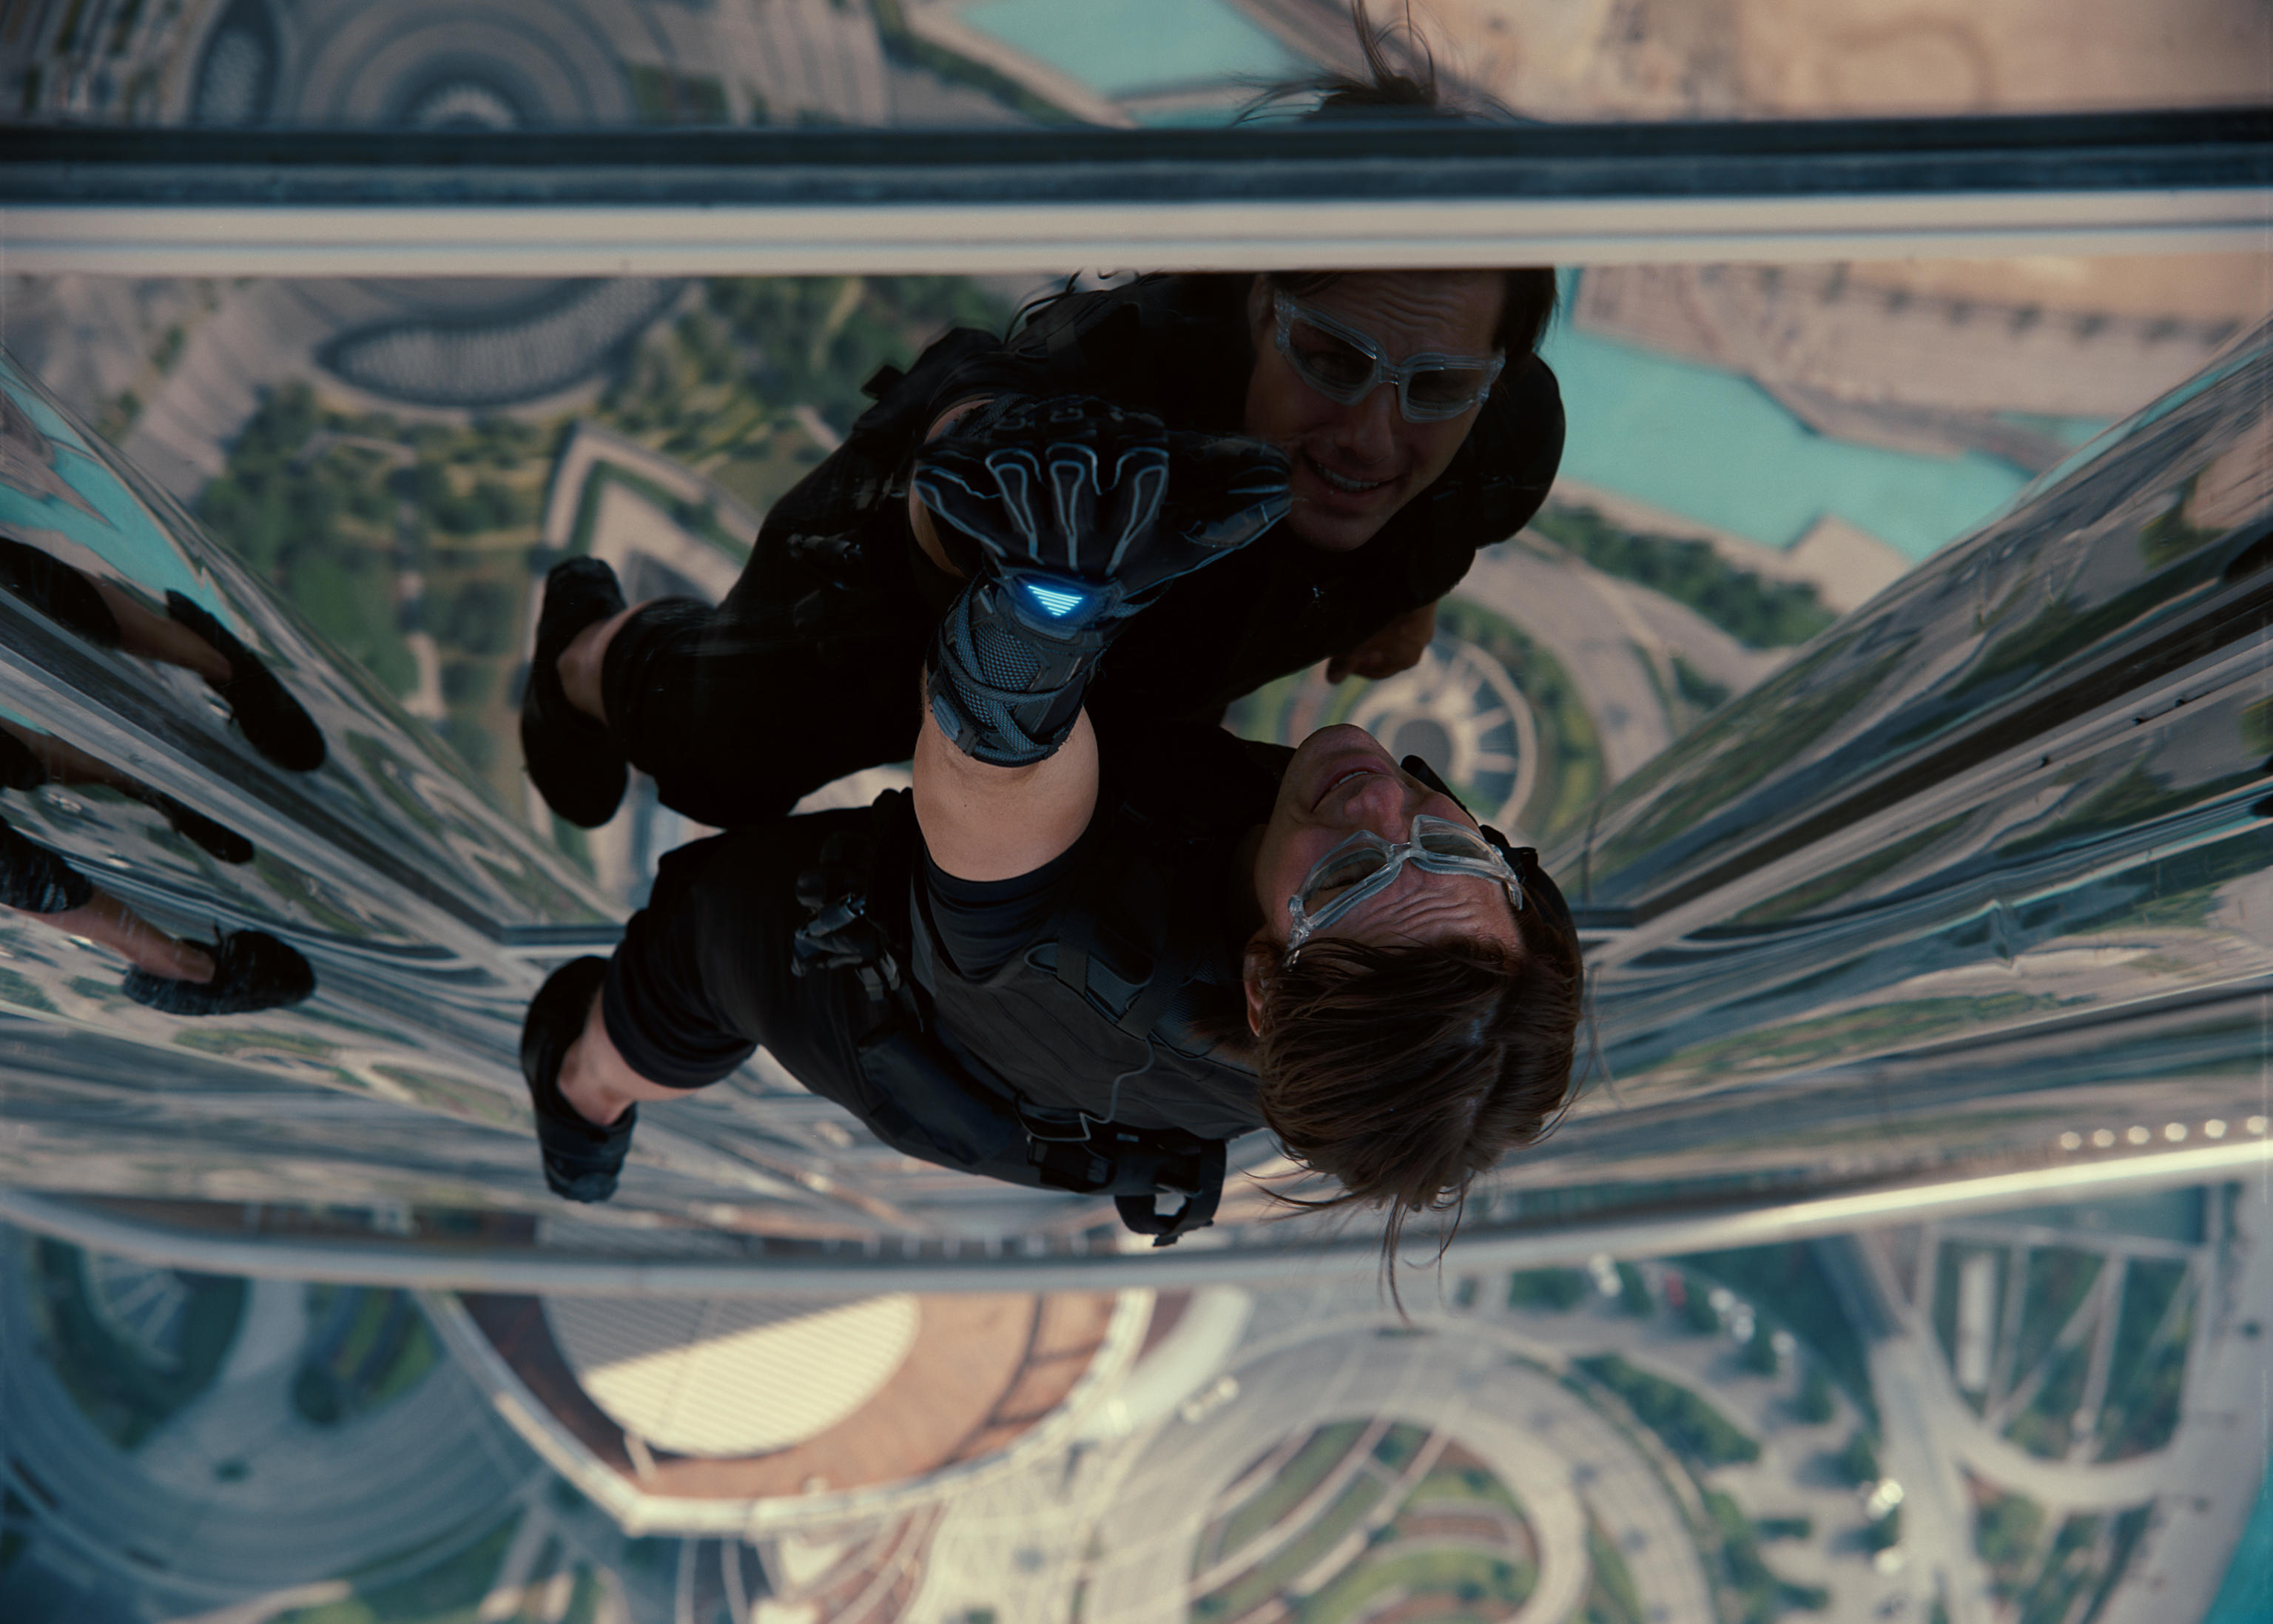 Ethan Hunt climbs the Burj Khalifa in Mission: Impossible -- Ghost Protocol, one of the series' wild stunts that showcases a cool gadget.